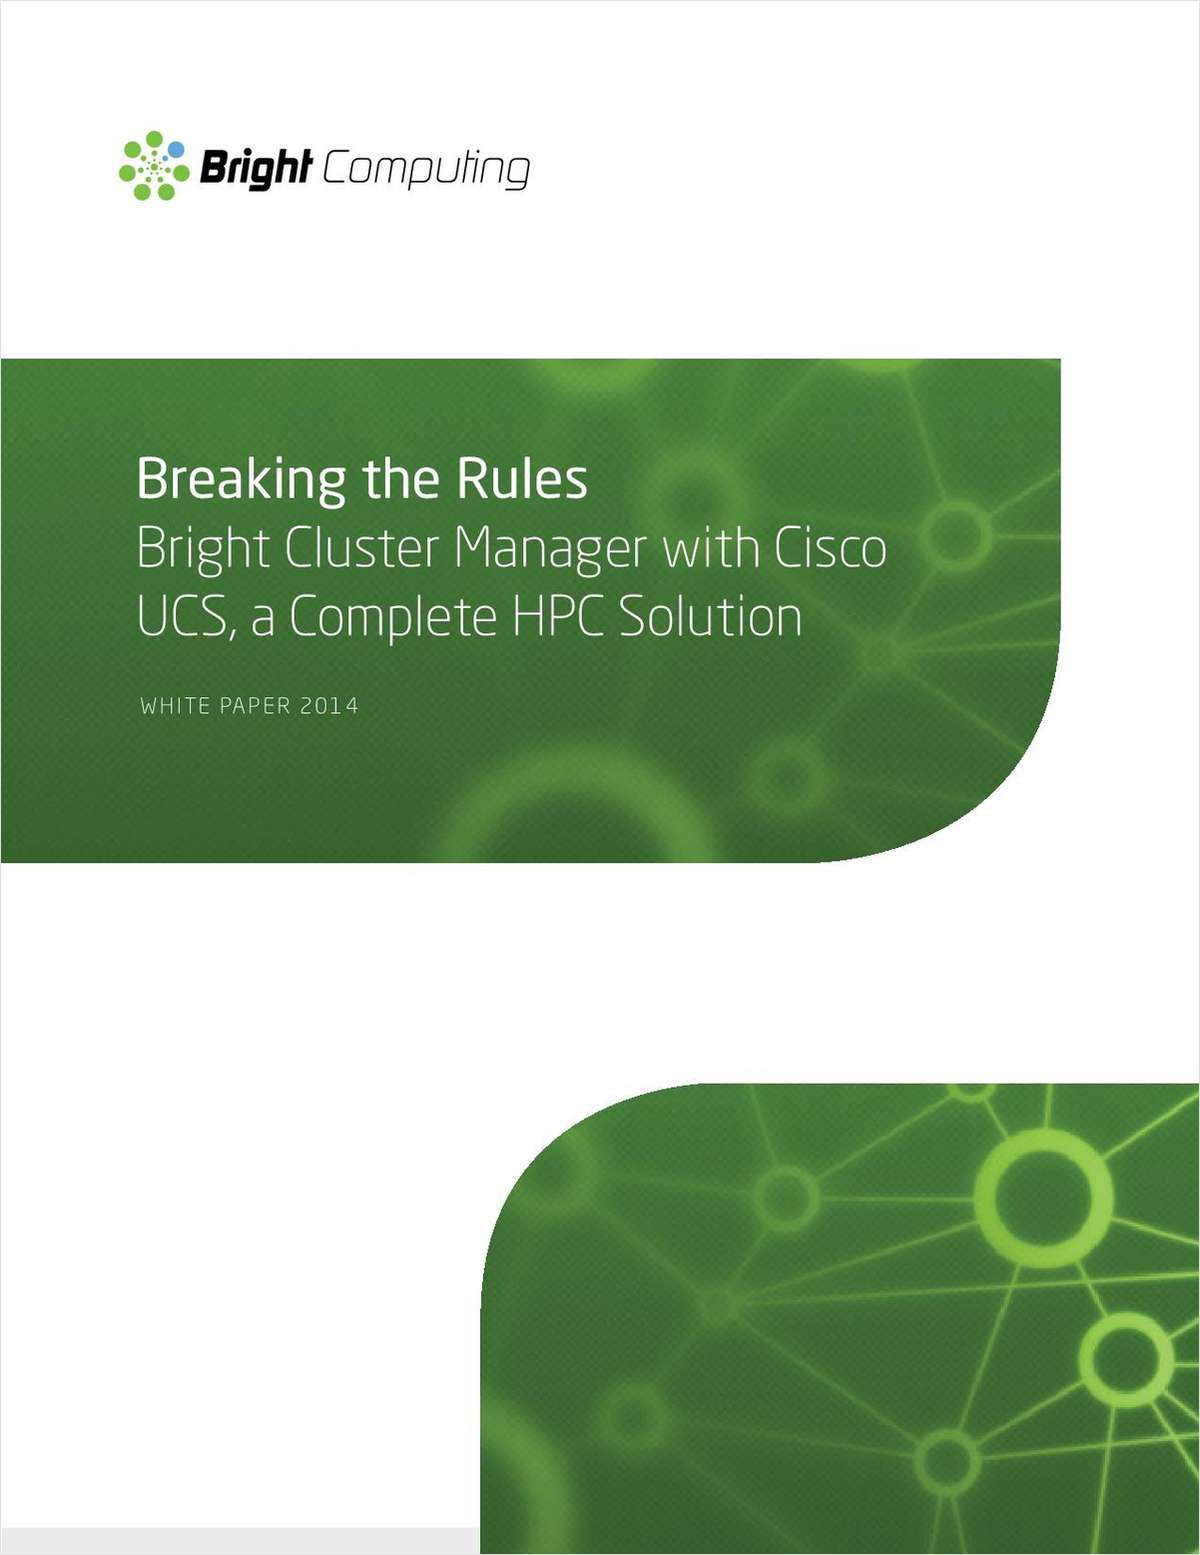 Breaking the Rules: Bright Cluster Manager with Cisco UCS, a Complete HPC Solution